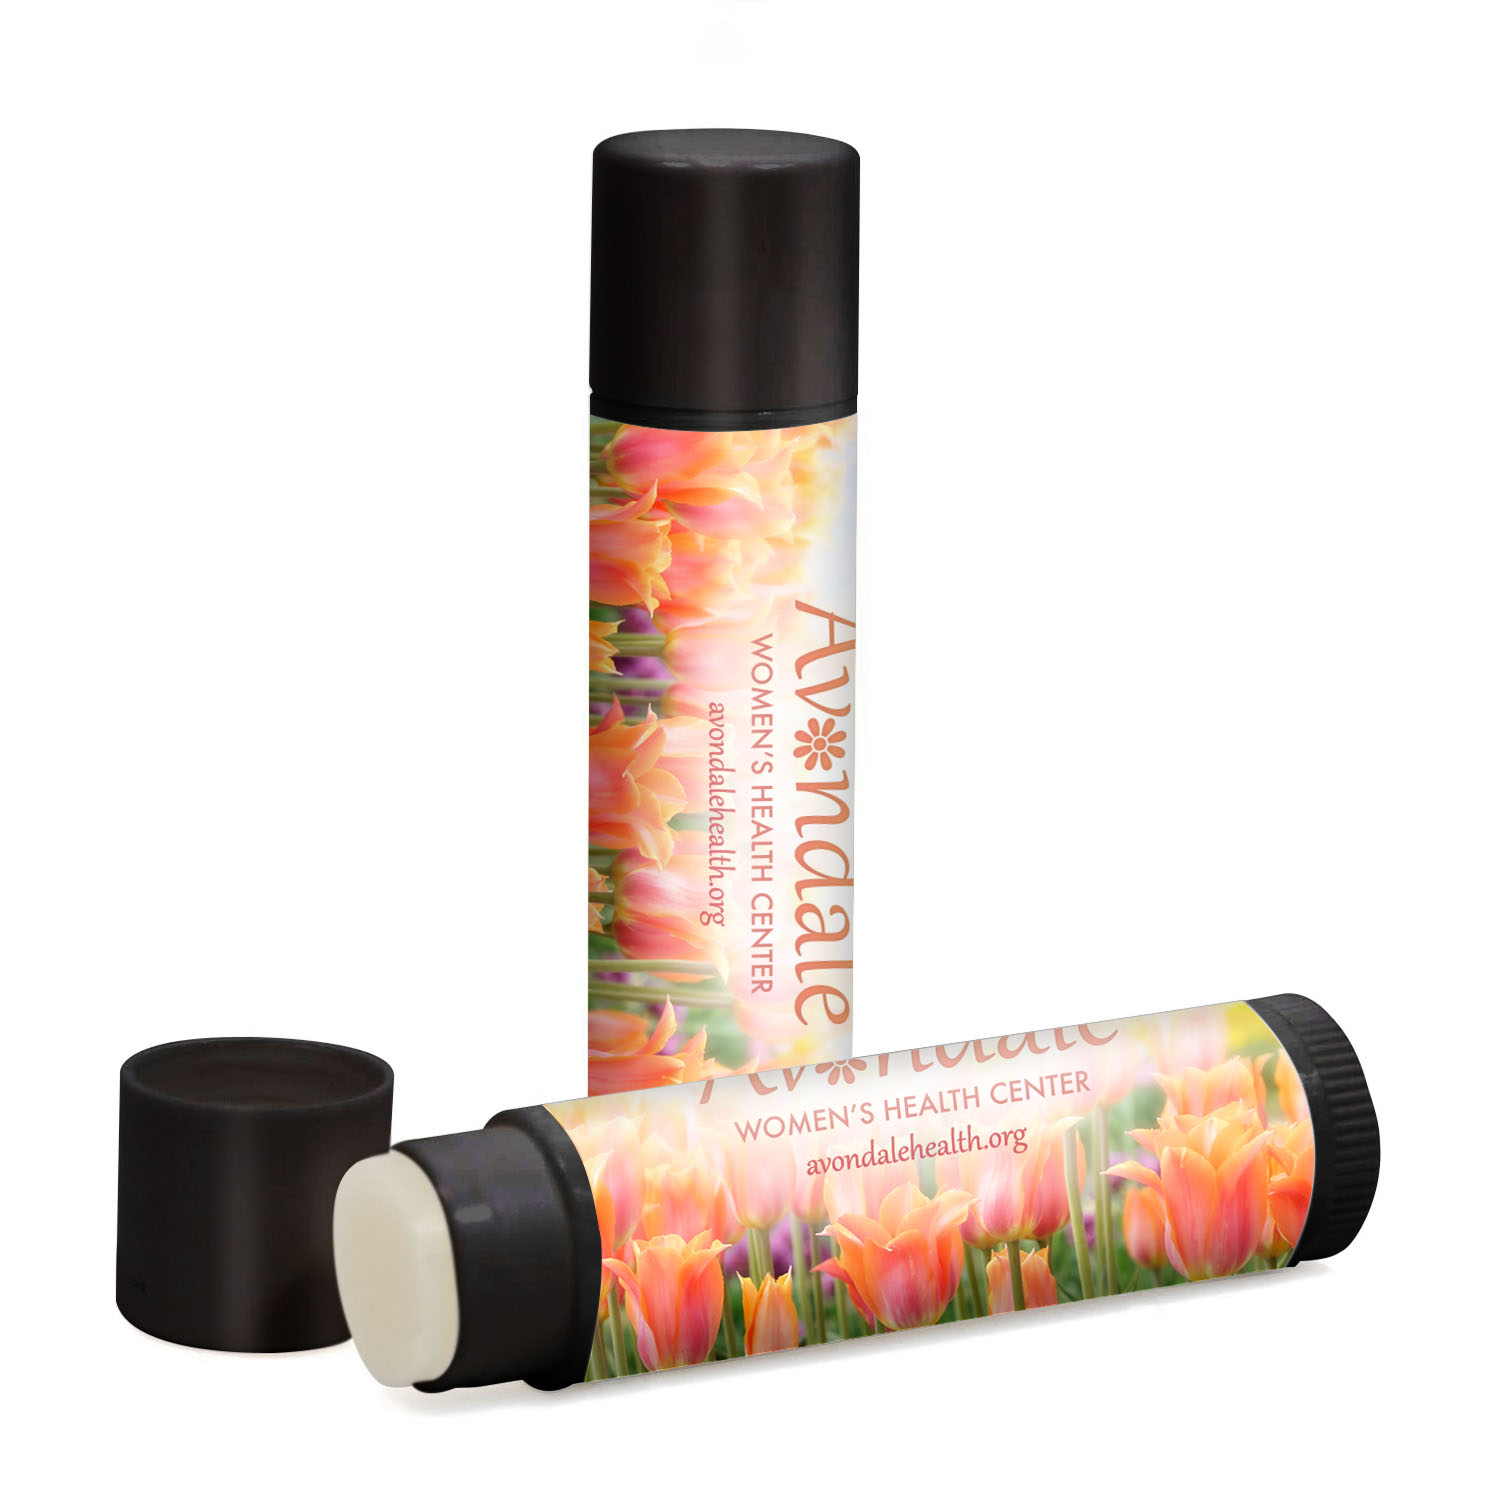 Fabulous Flavors Lip Balm in Black Tube, SPF 15